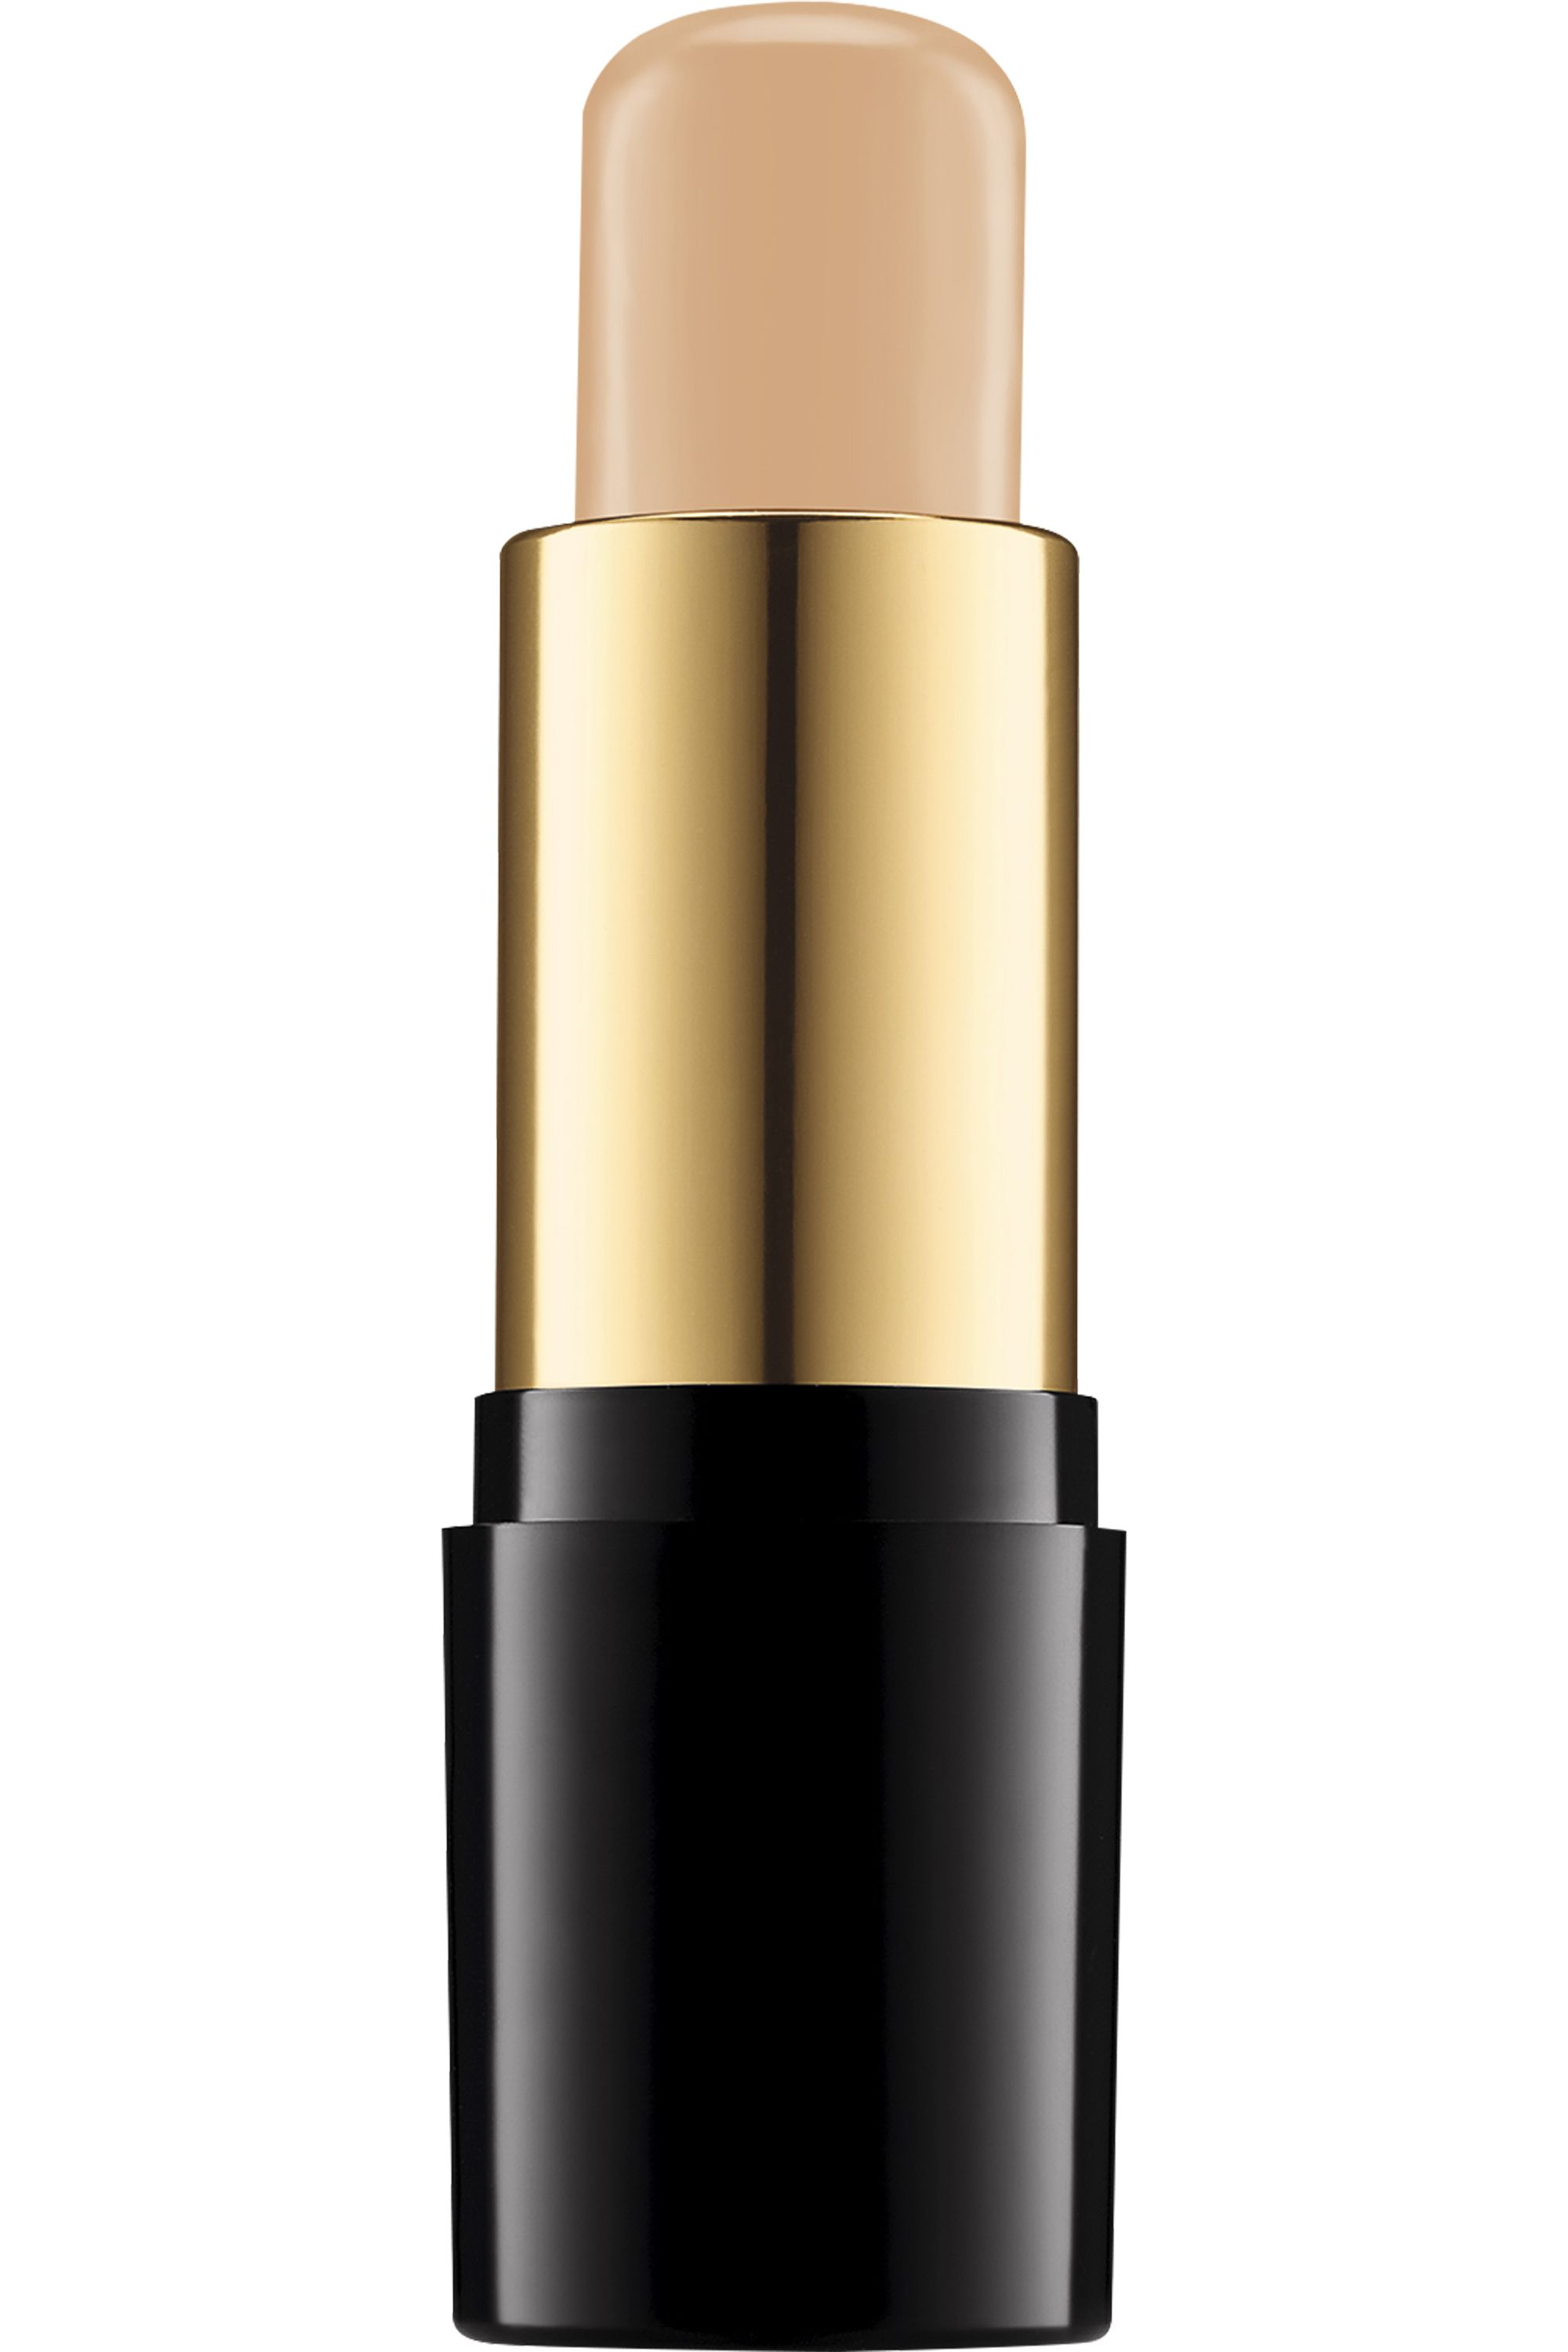 Blissim : Lancôme - Teint Idole Ultra Wear Stick - 045 Sable Beige